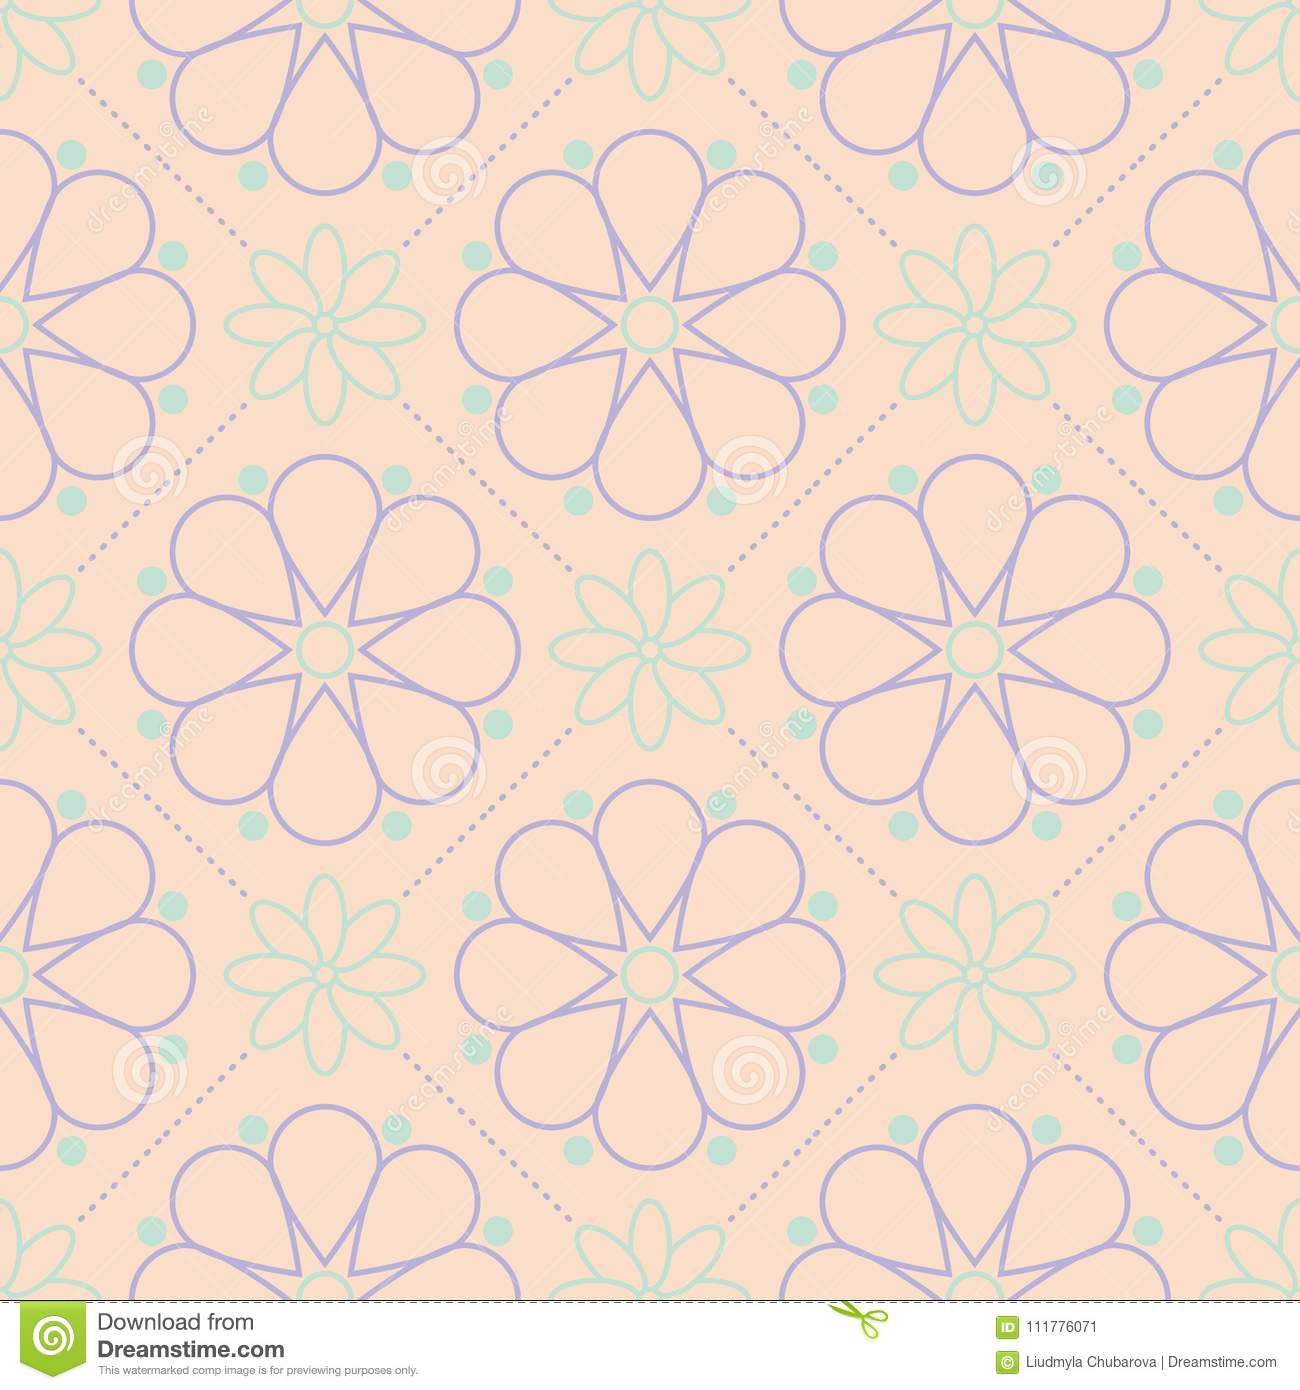 Multi colored floral seamless pattern. Beige background with violet and blue flower elements